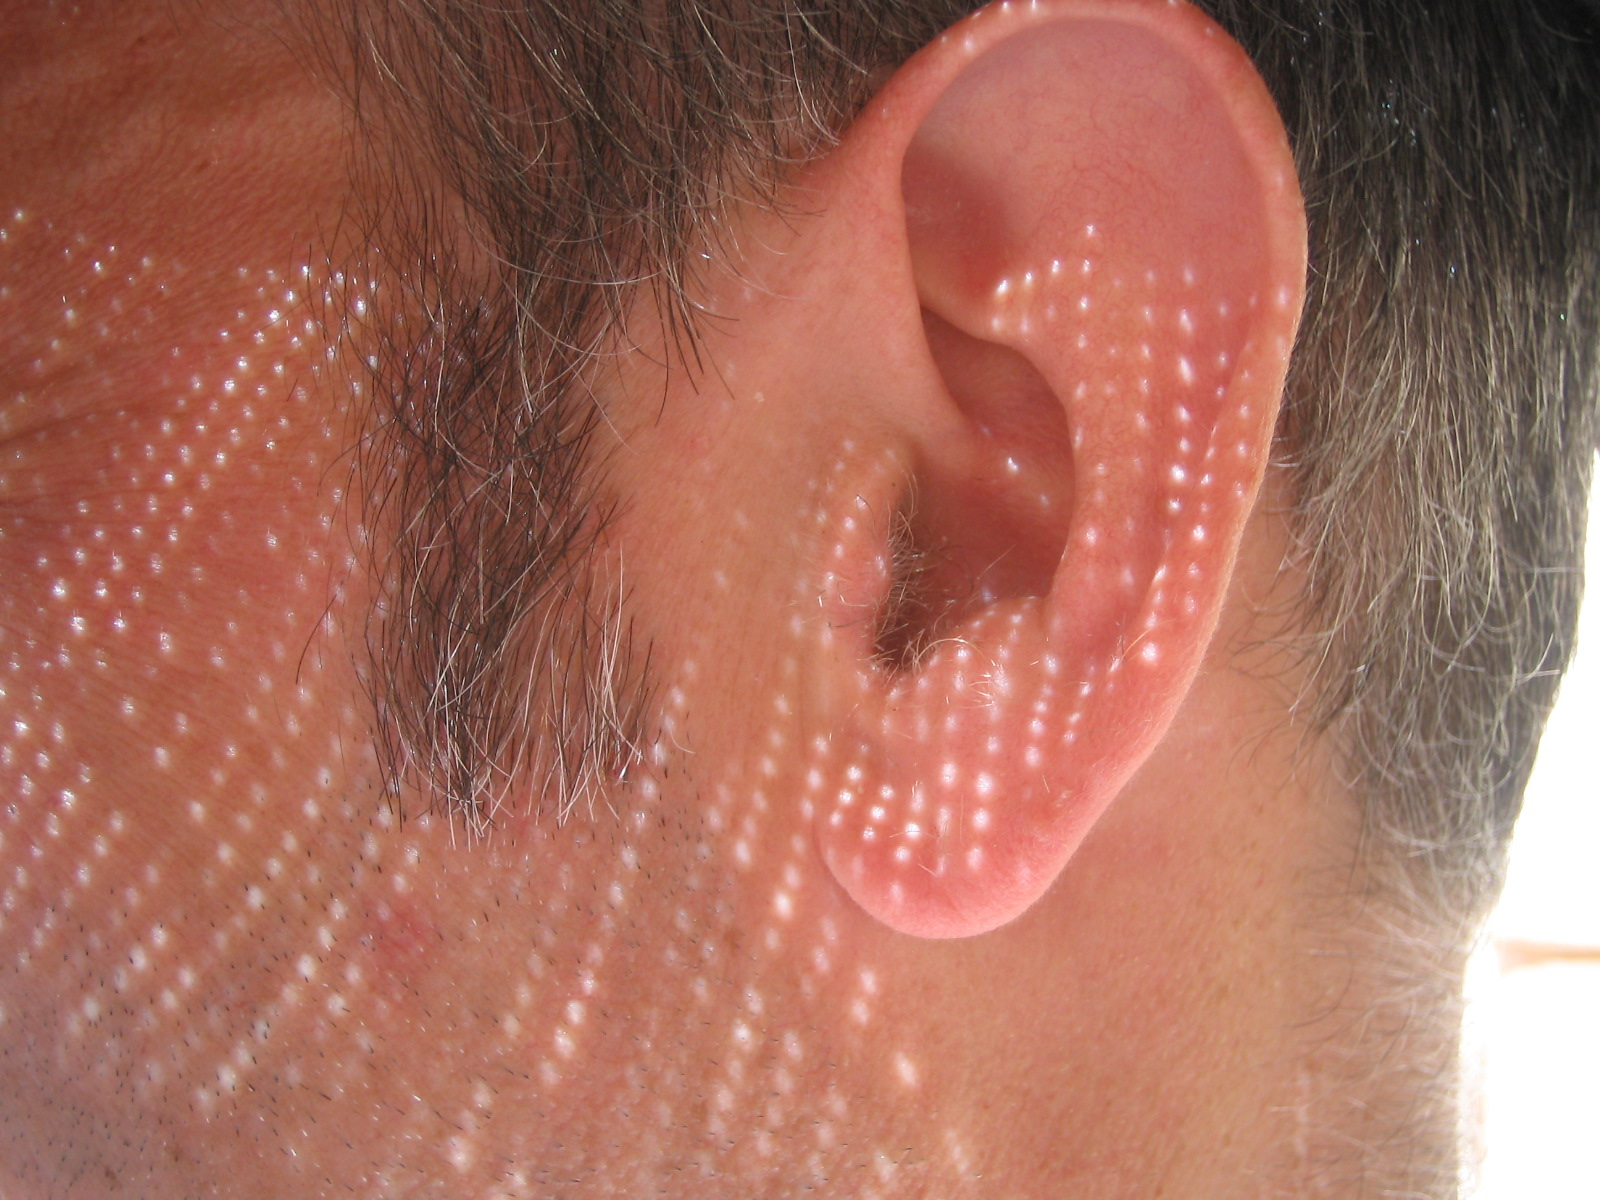 Safe Microsuction Ear Wax Removal with Possible Side Effects!